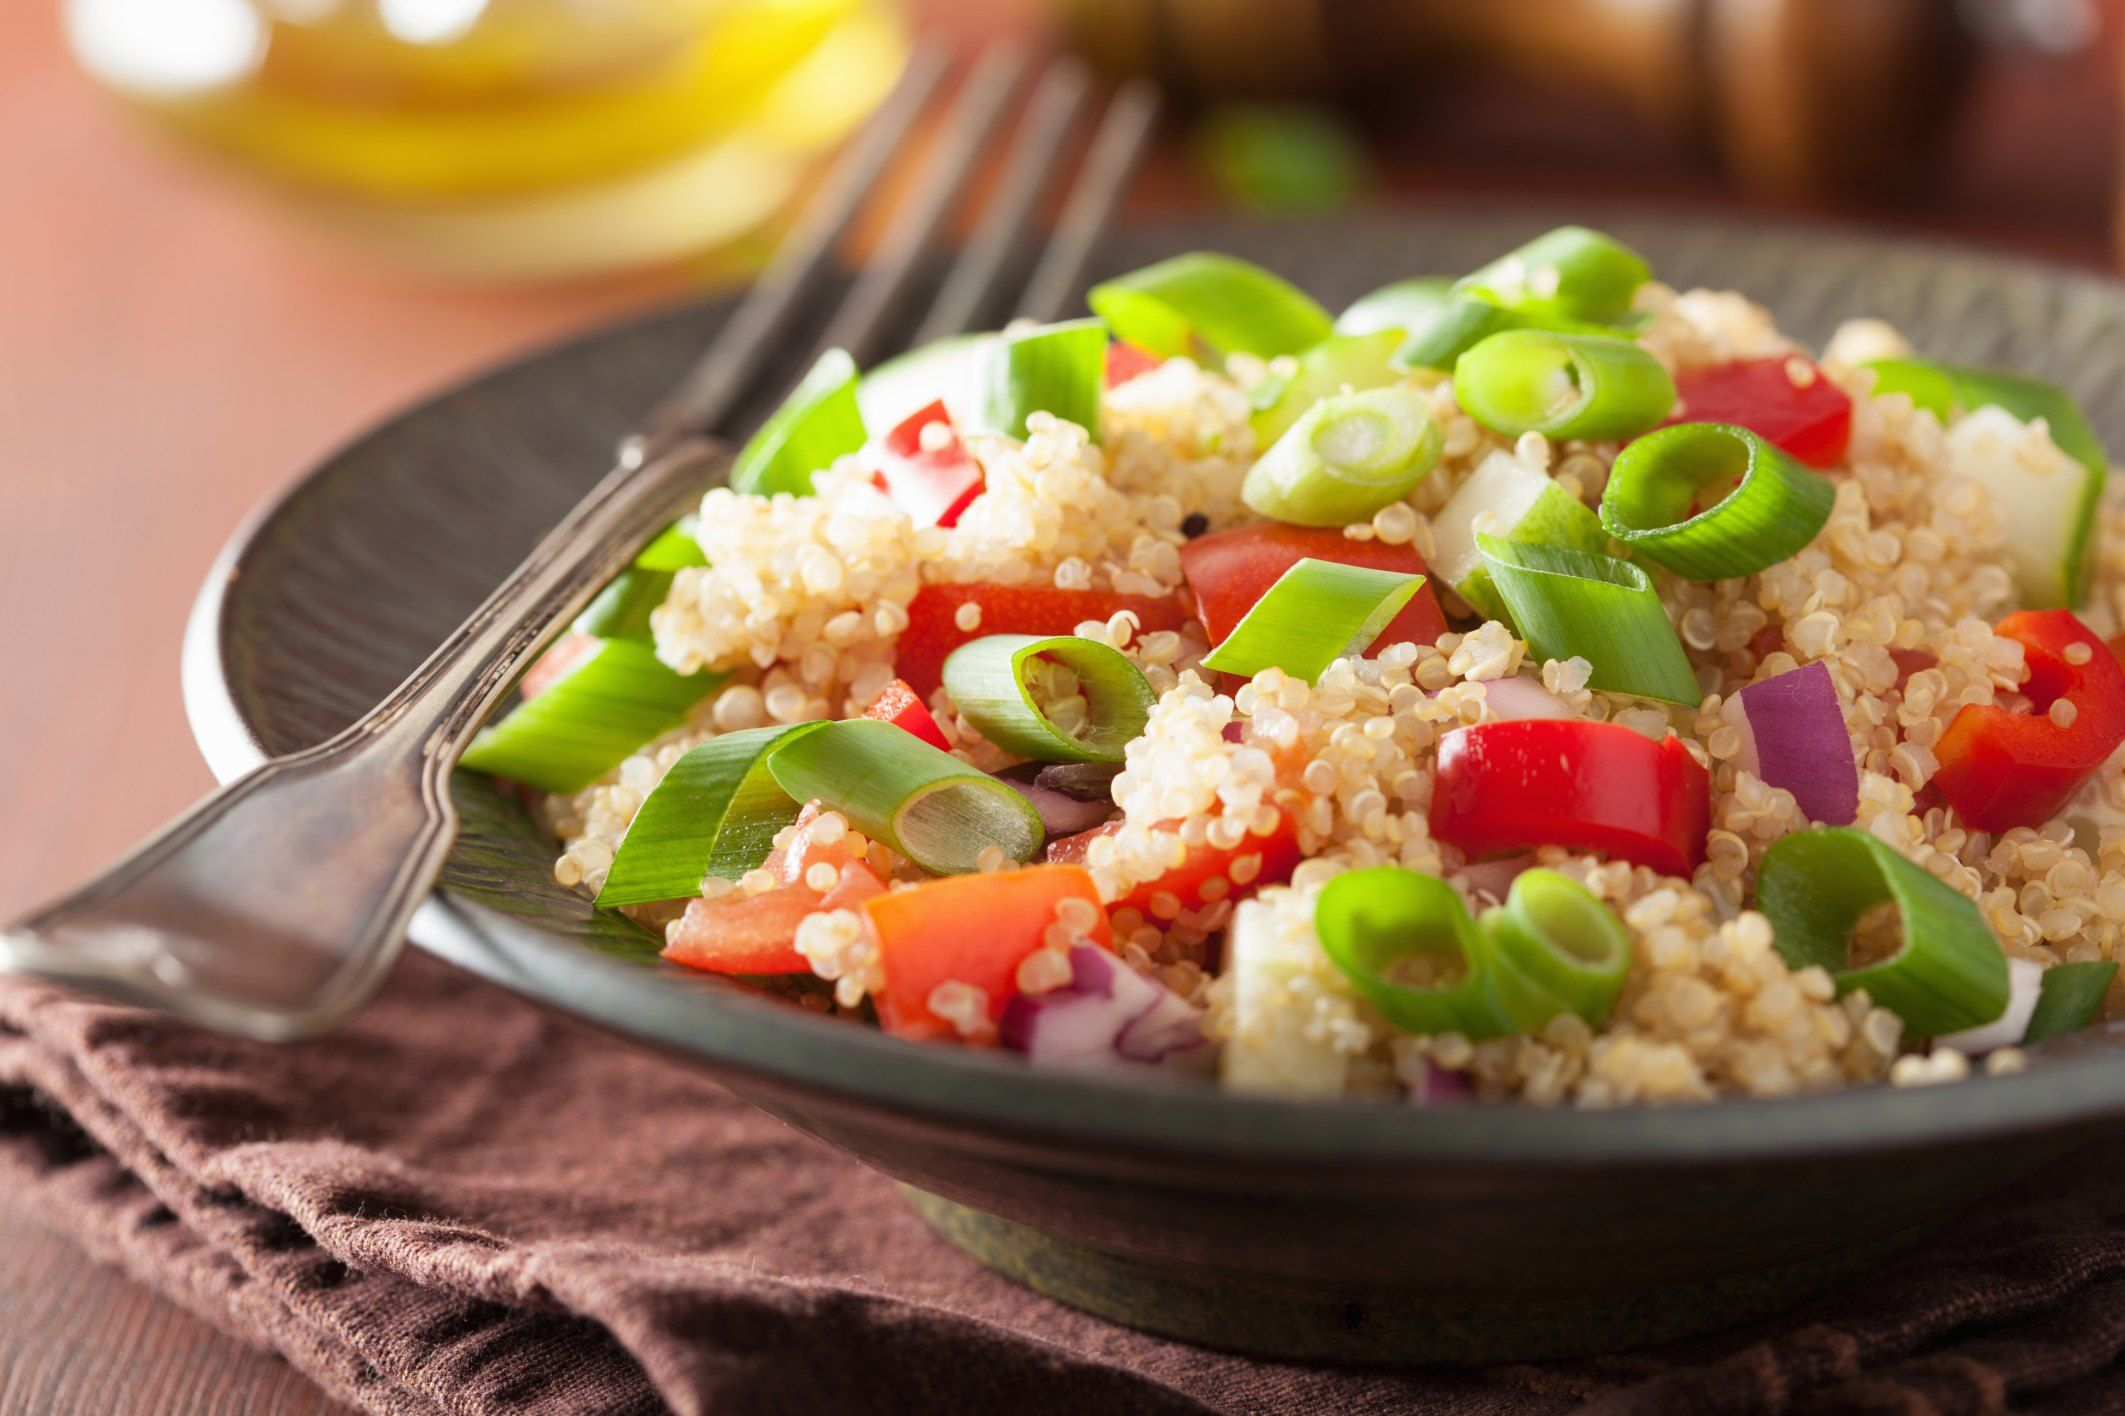 Why Quinoa Should Be a Part of Your LowCarb Diet Low